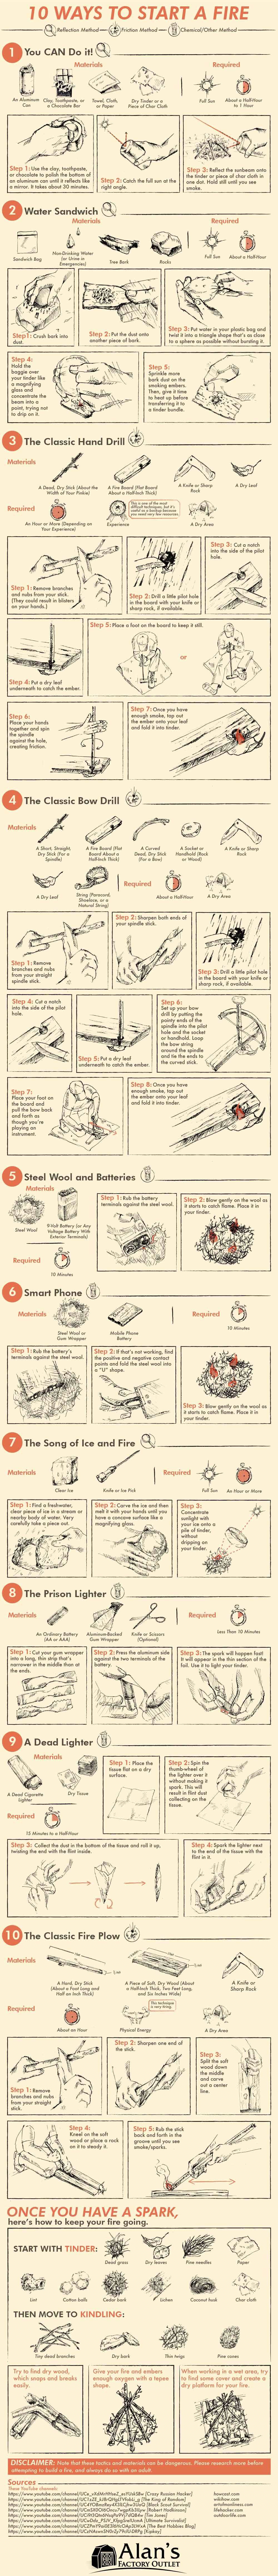 10 Ways To Start A Fire Without a Lighter or Matches